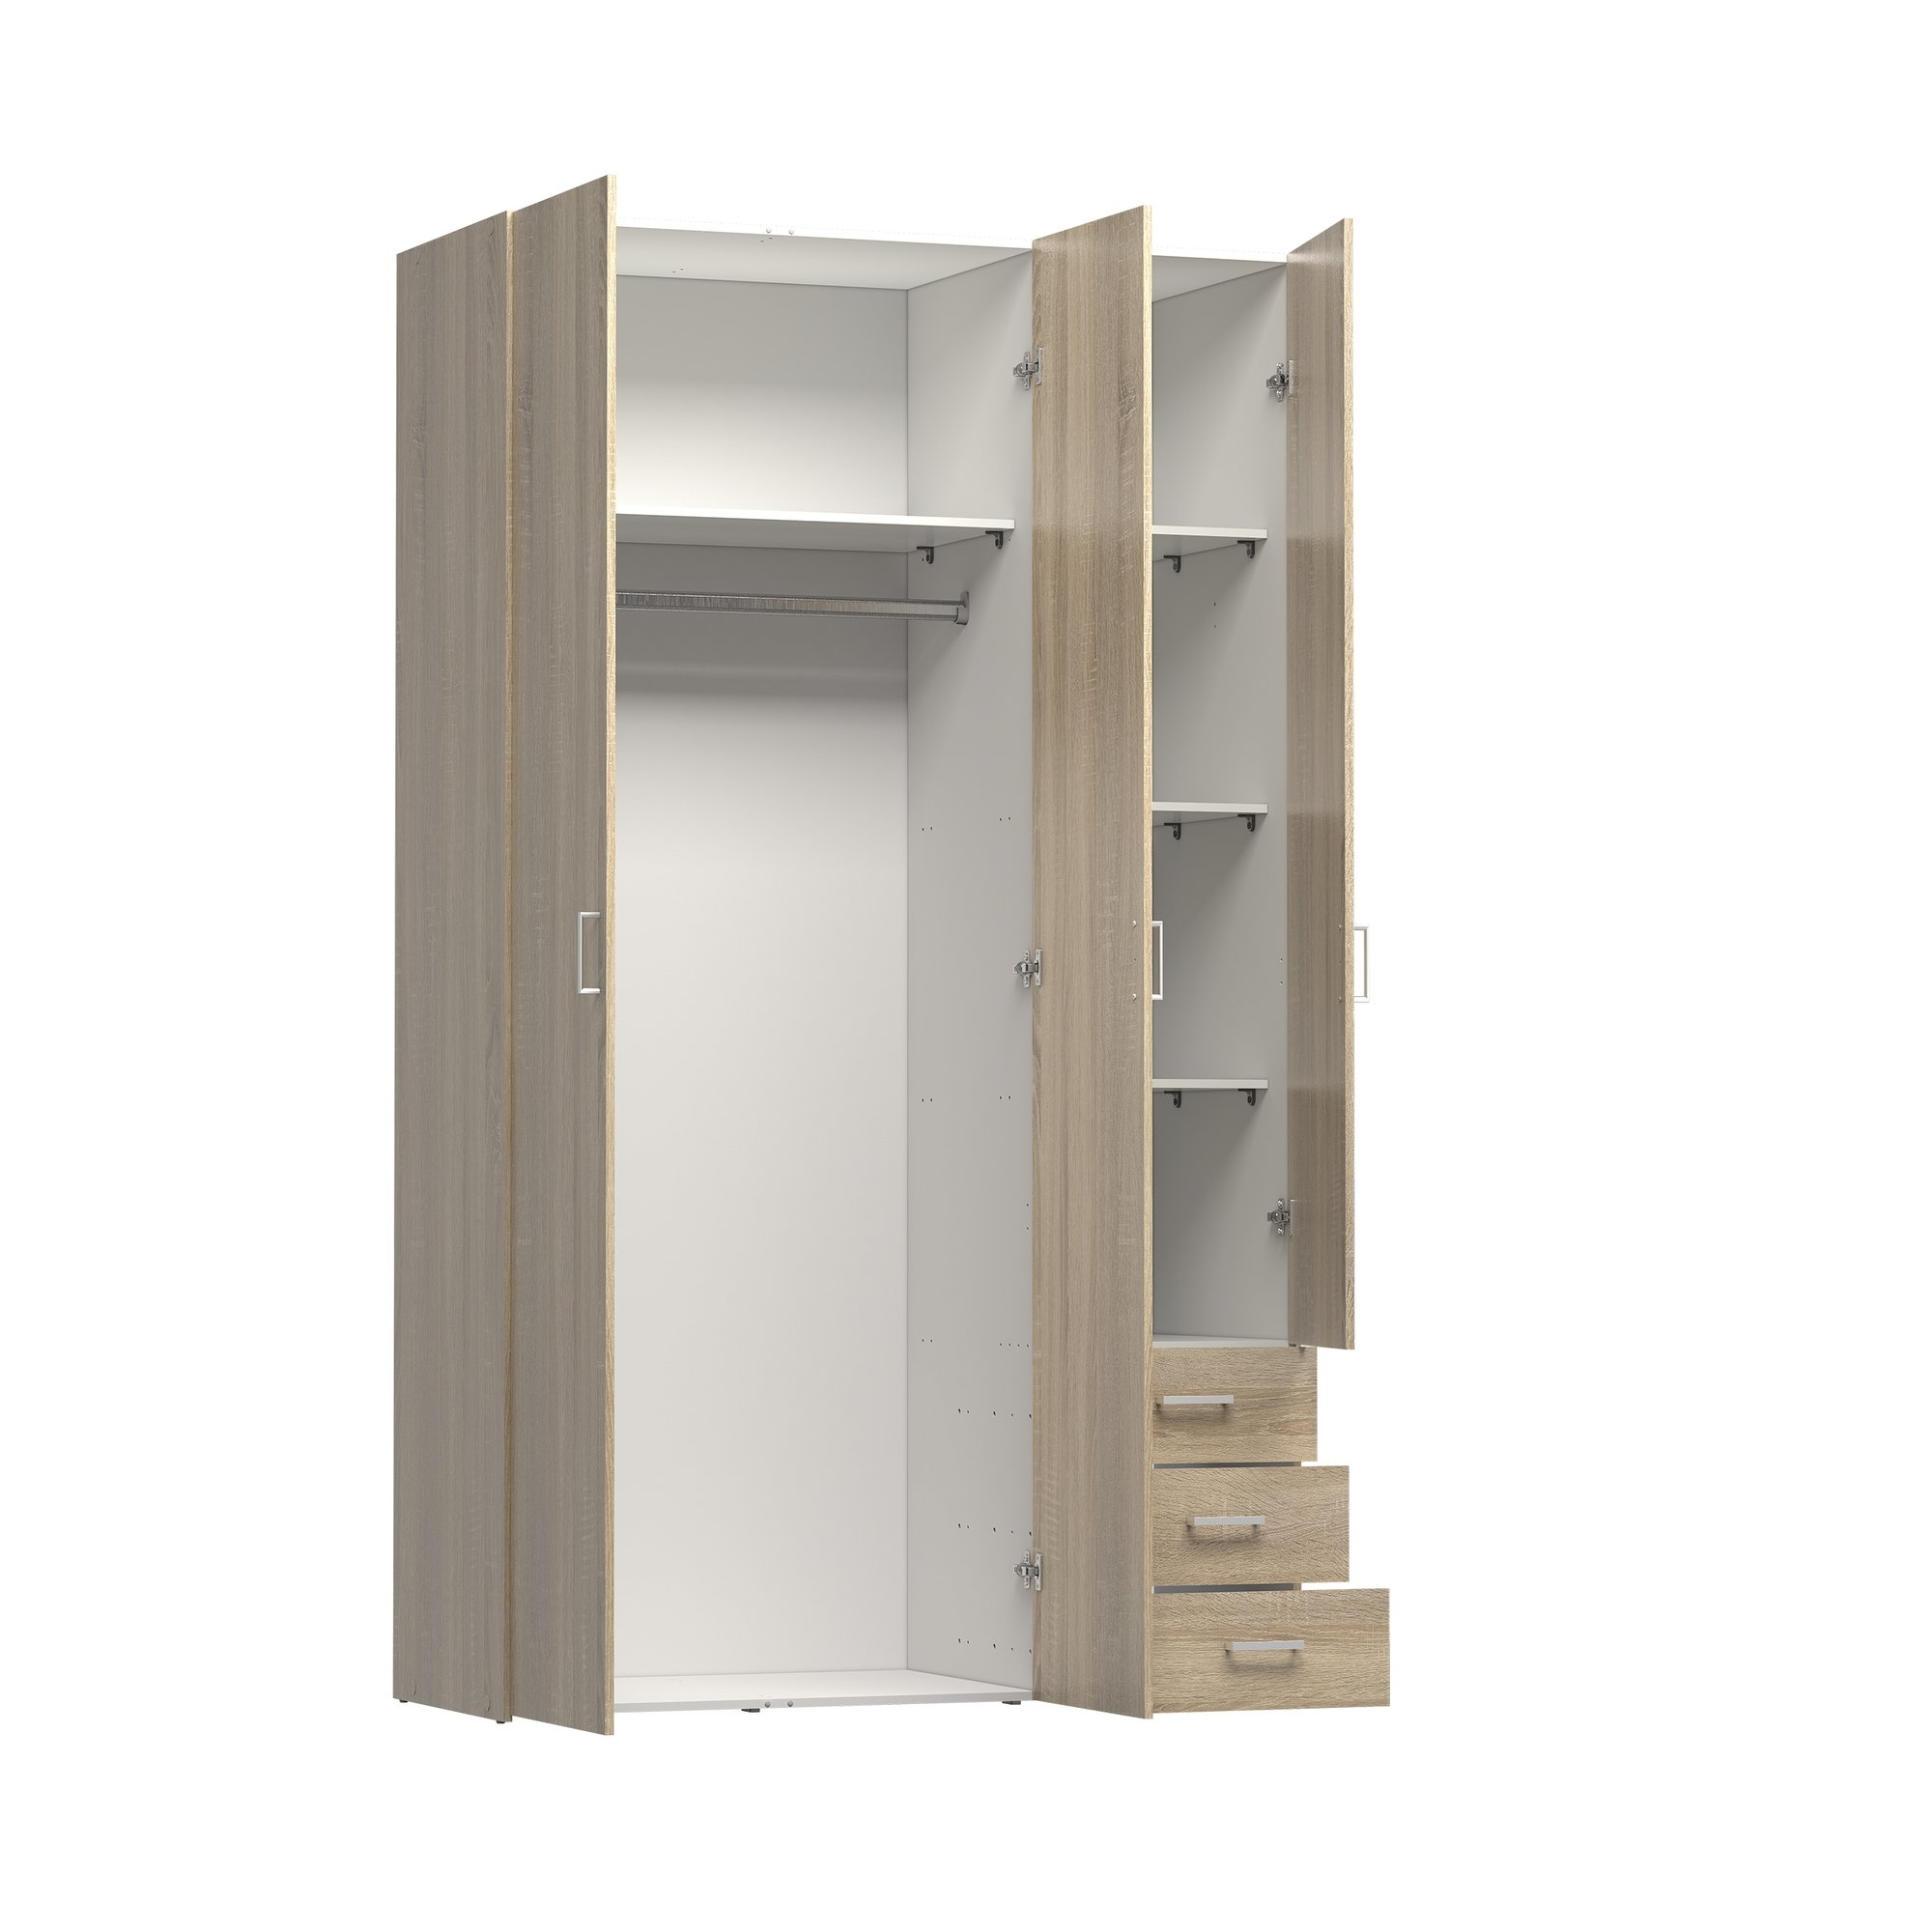 Wardrobe With Shelves And Drawers Best Drawer Model Throughout Wardrobe With Shelves And Drawers (View 5 of 15)